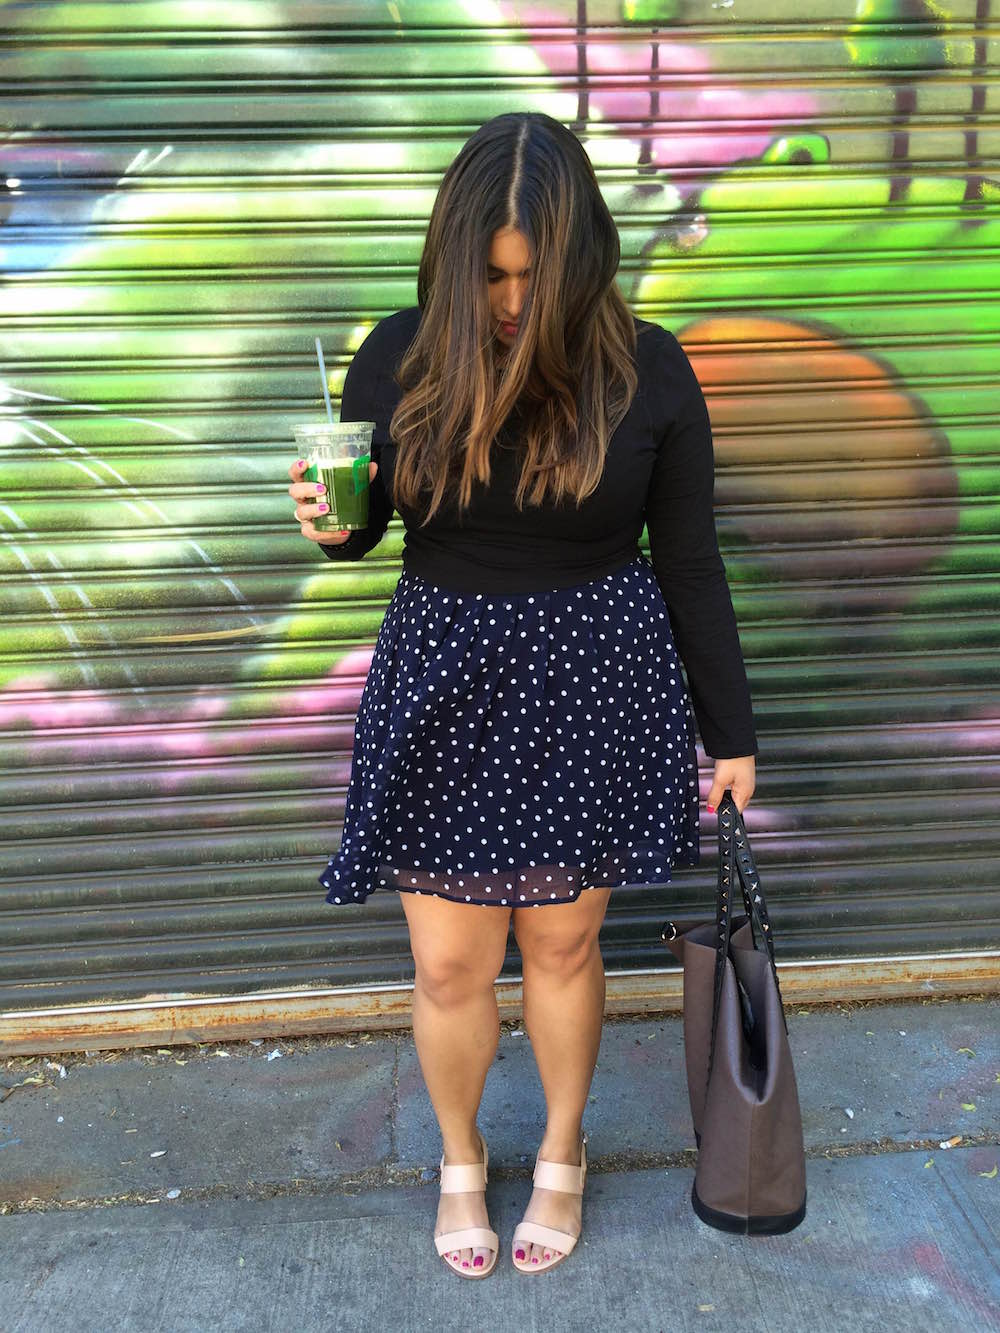 Polka dot skirt // brokeandchic.com